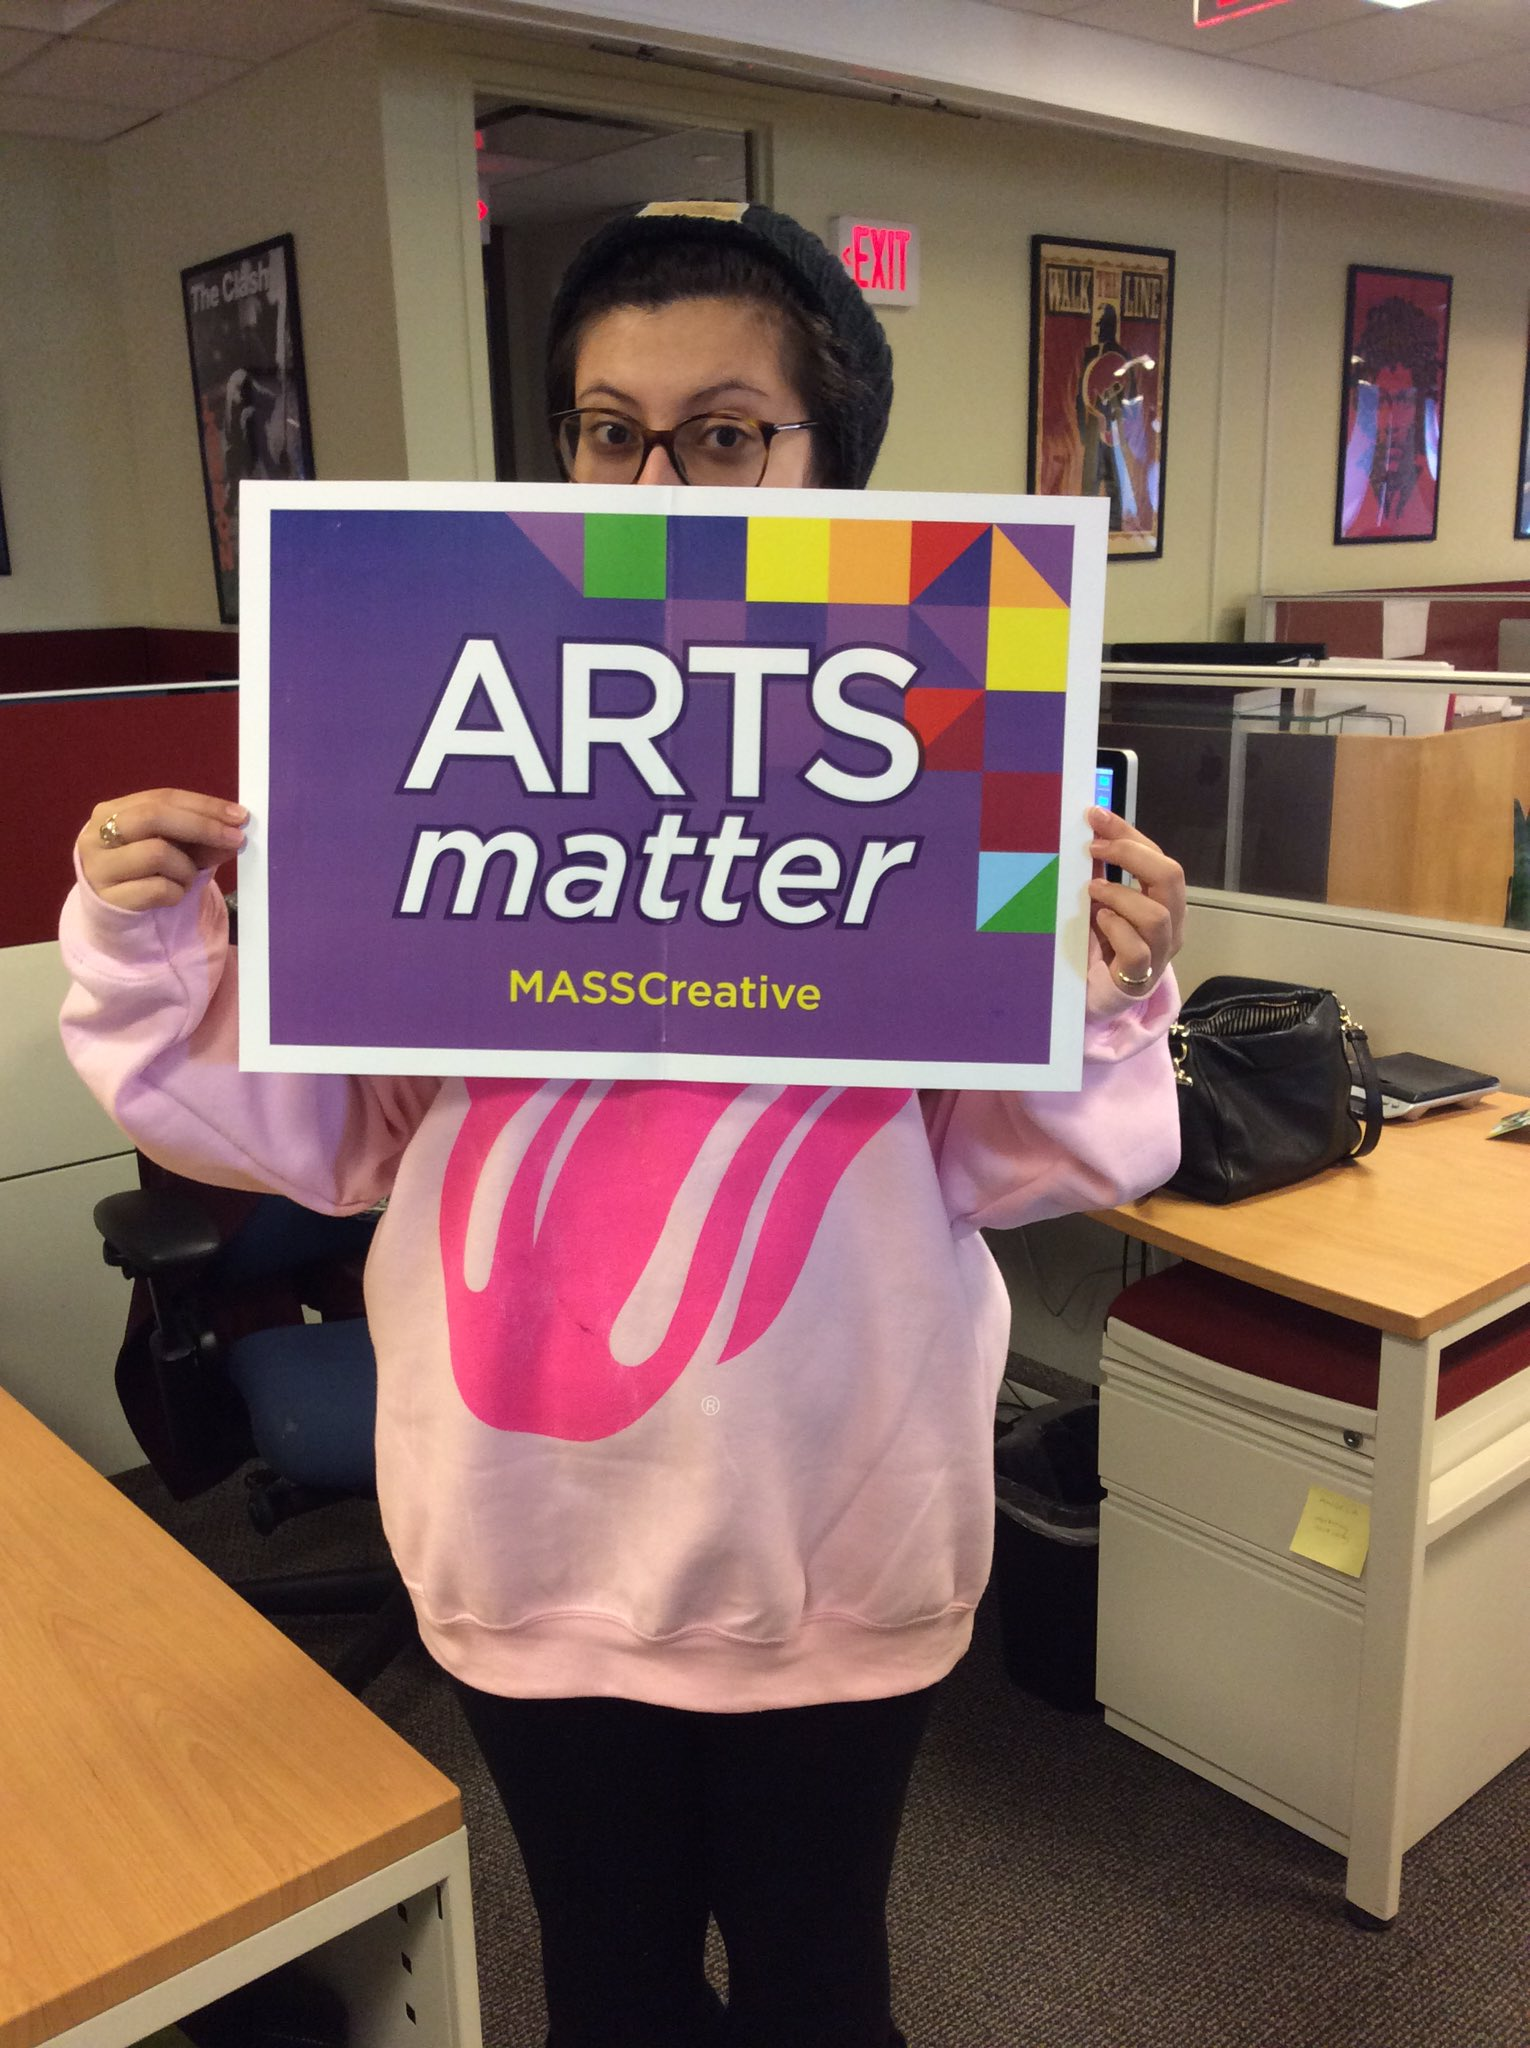 We're celebrating #ArtsMatterDay because #music changes lives. @MASSCreative https://t.co/WTICAEgUBW